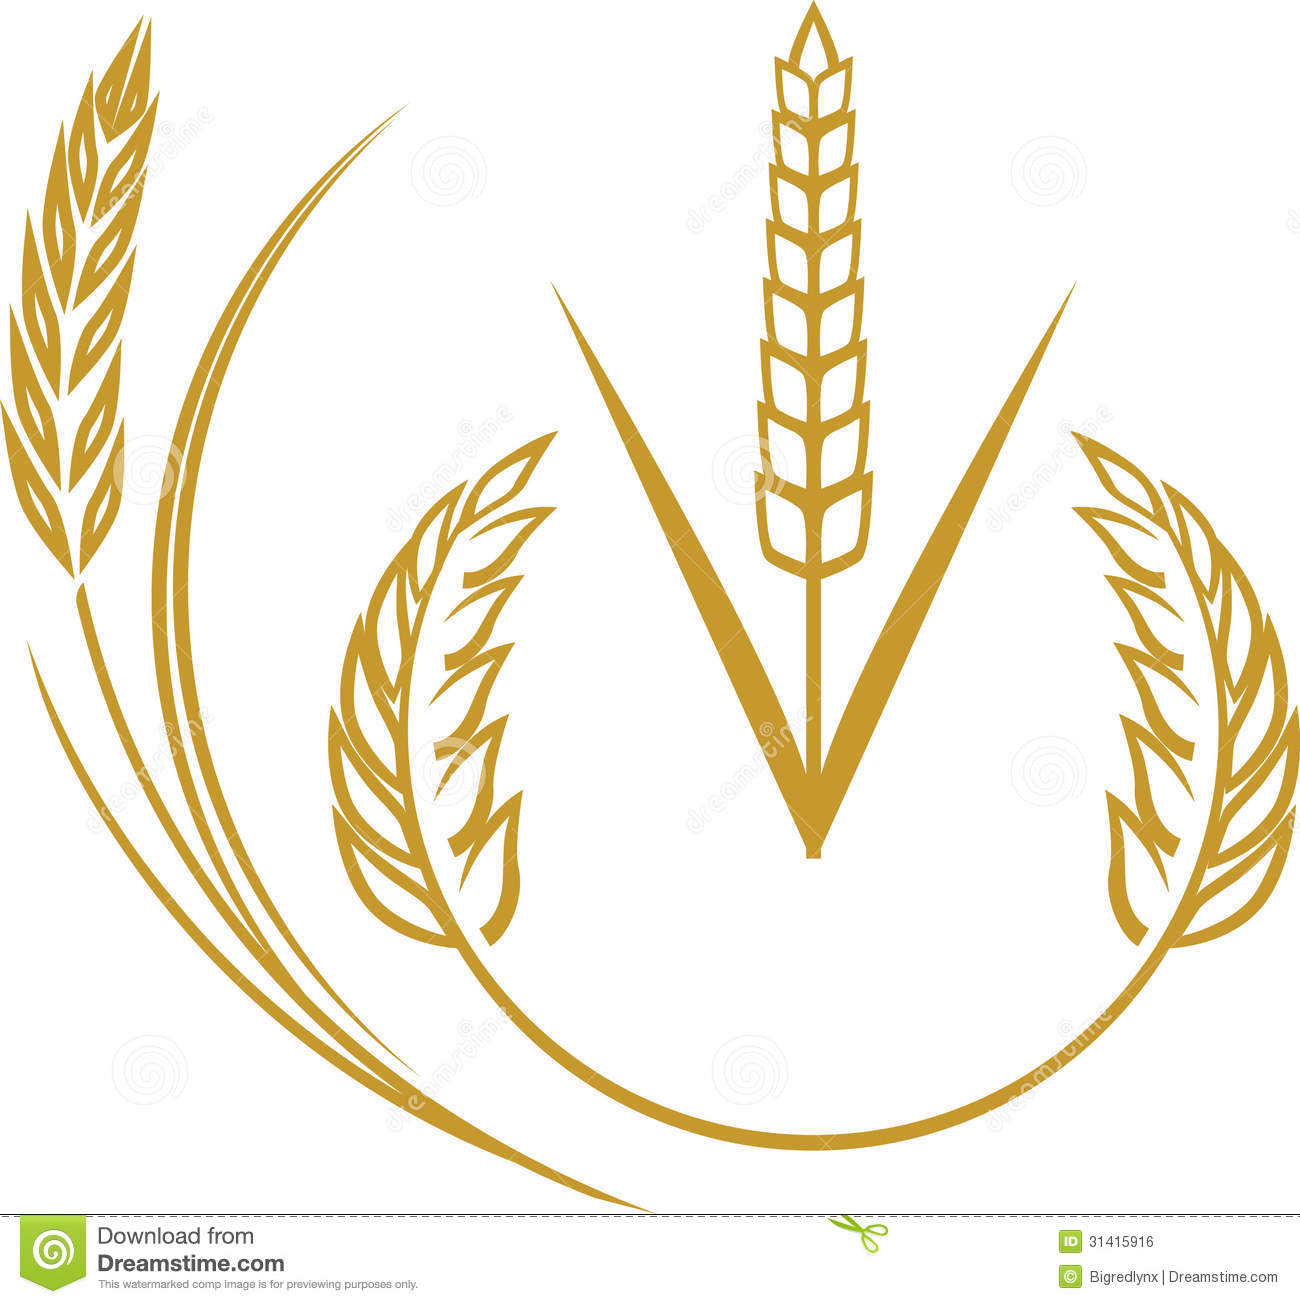 Wheat Elements Royalty Free Stock Image